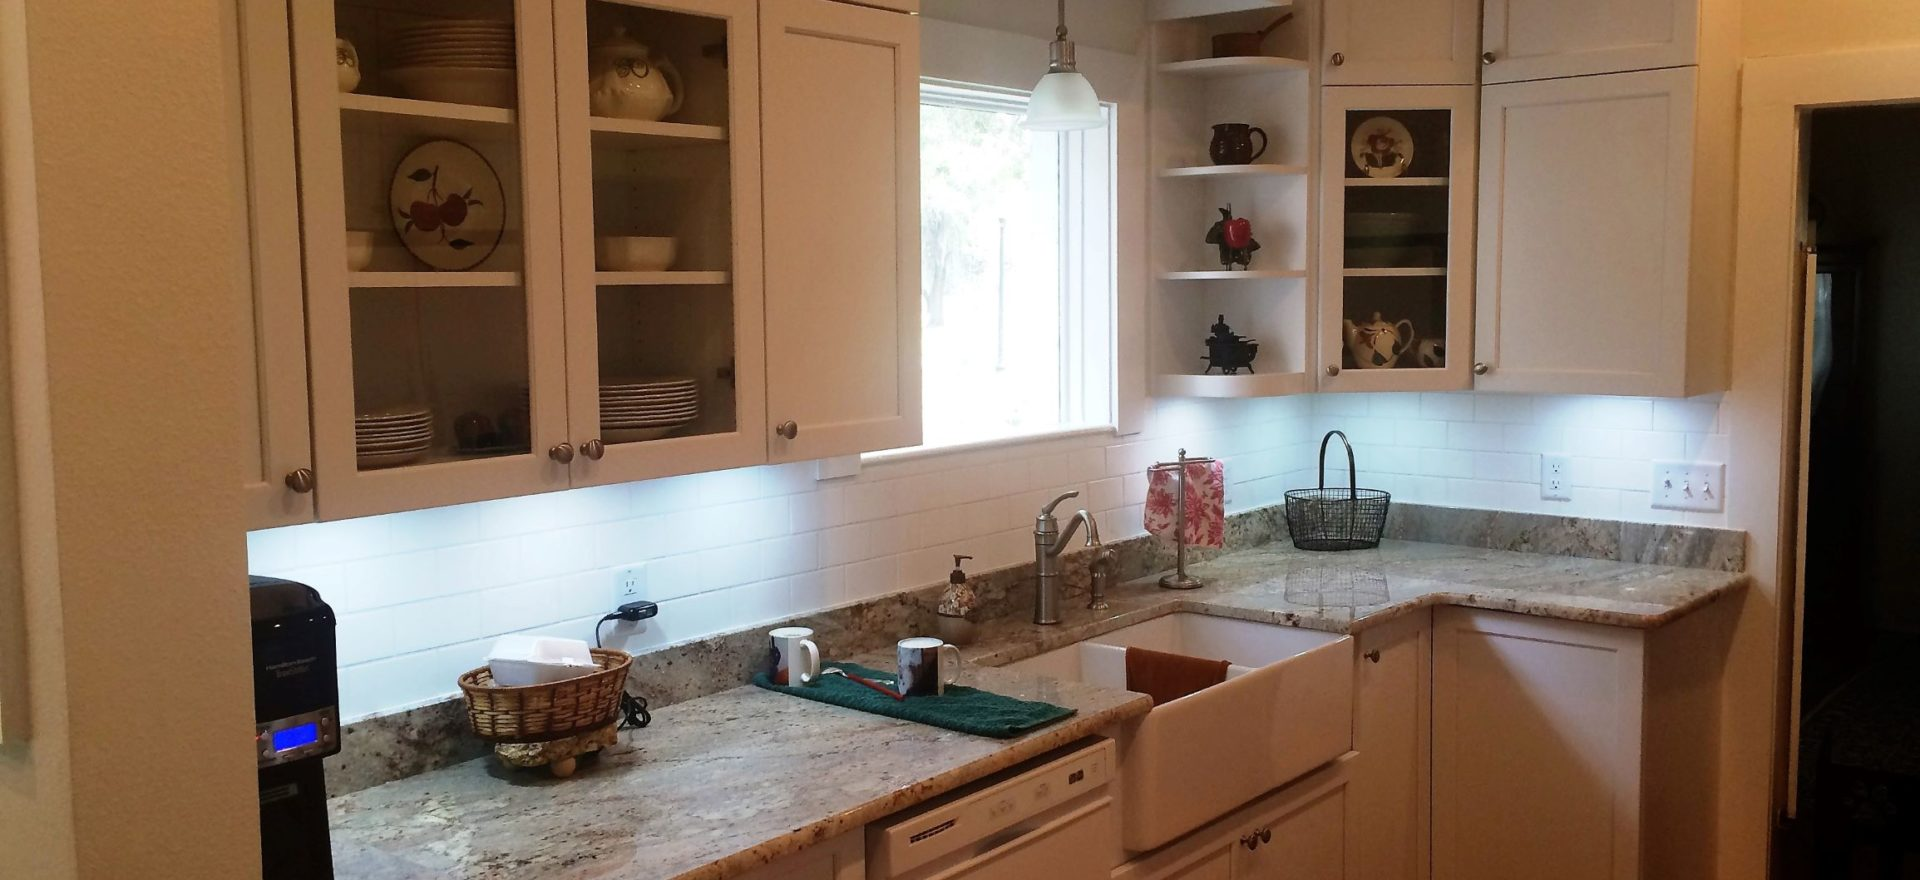 Russell 2016 Kitchen remodel II